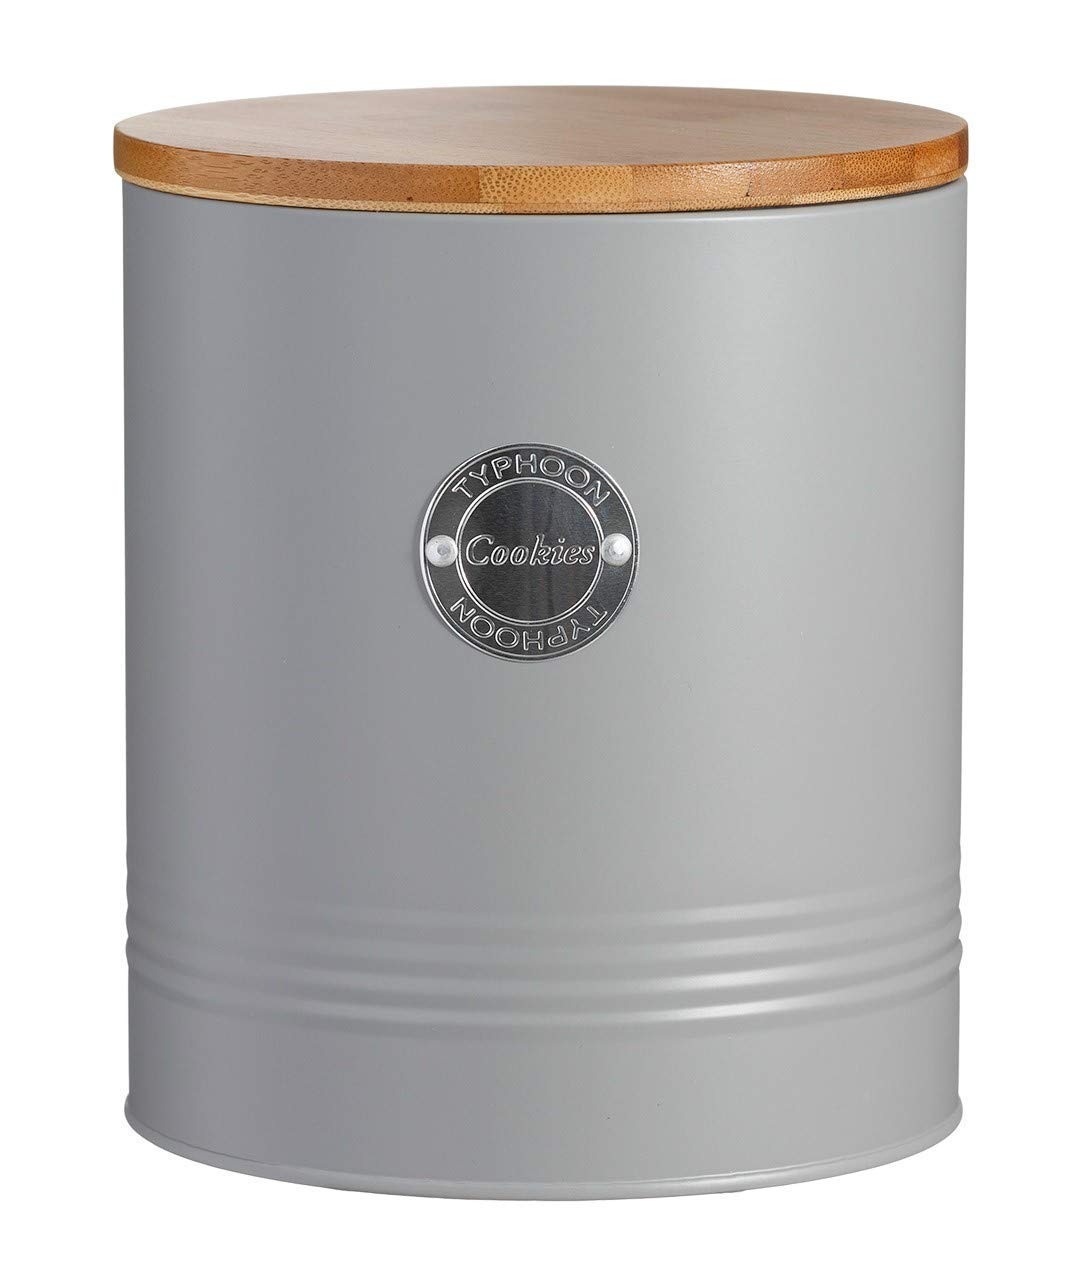 Typhoon Living Airtight Seal Cookie//Biscuit Tins Storage Canister Jar with Bamboo Lid Grey